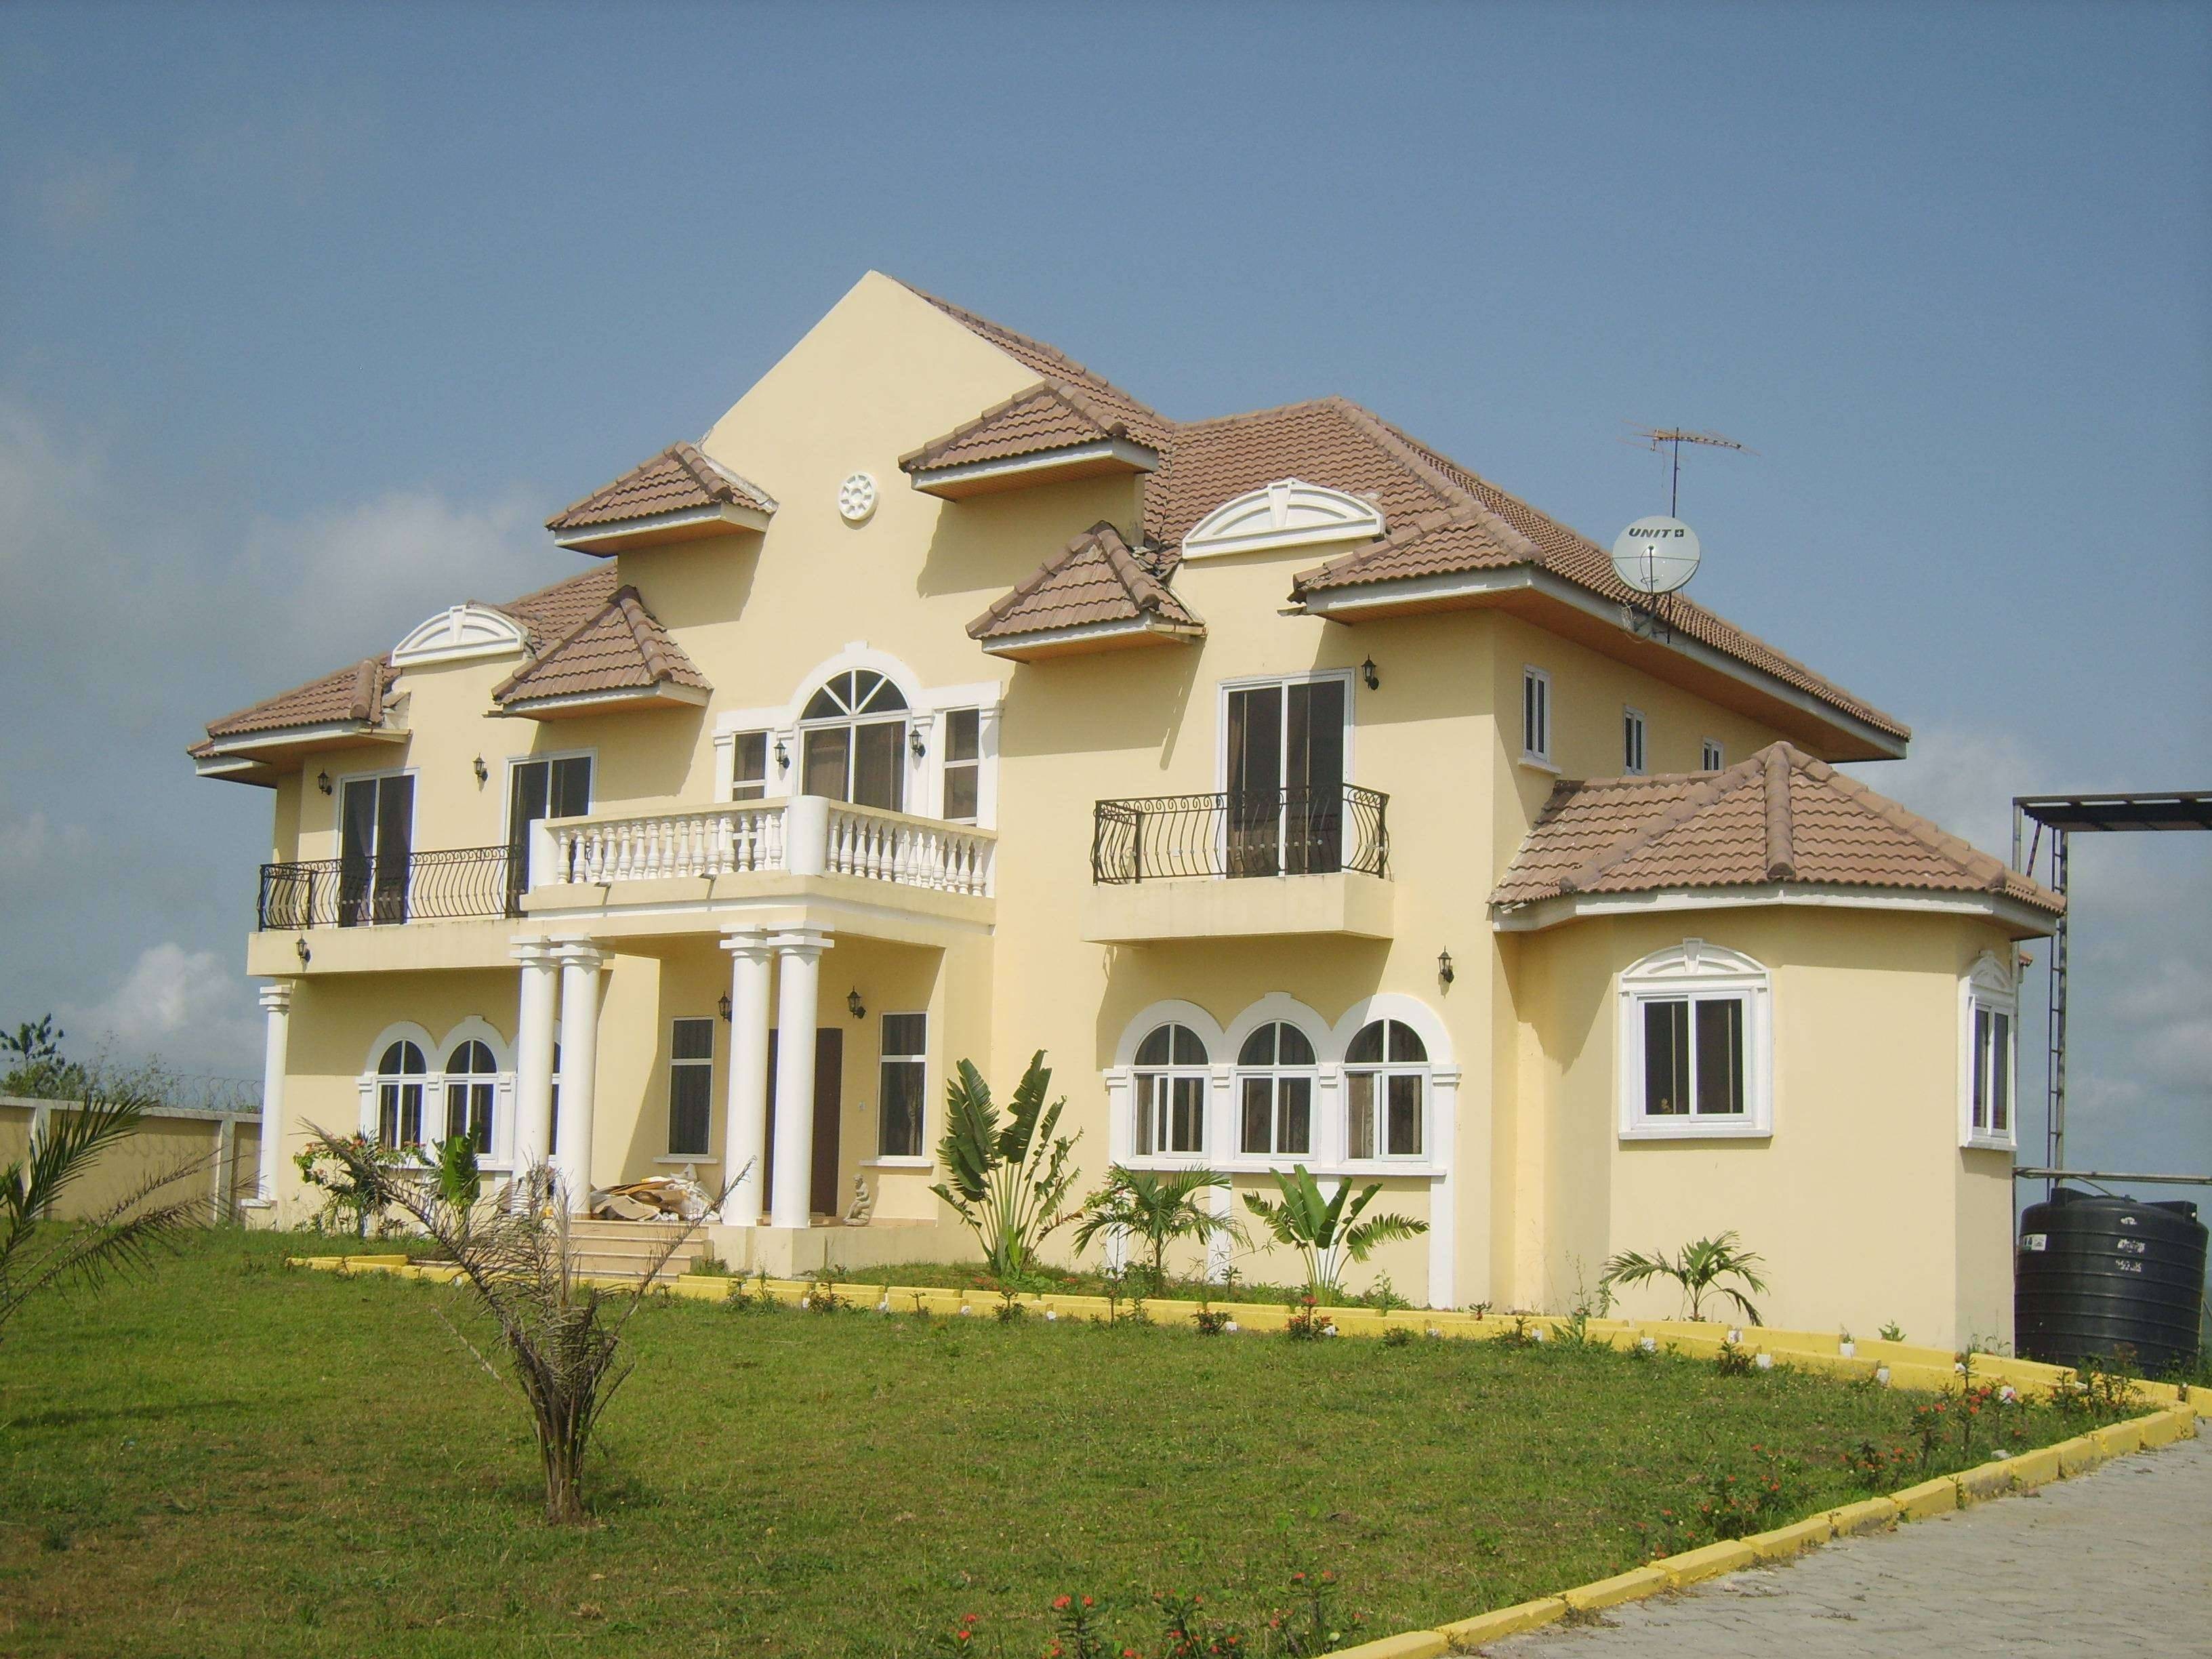 Mauritania Rental Houses besides Presidential Seat Ghana further Ghana Homes For Sale also Trasacco Valley Houses Accra In Ghana also Hotel Boutique Sagaro In Girona. on guest houses in accra ghana